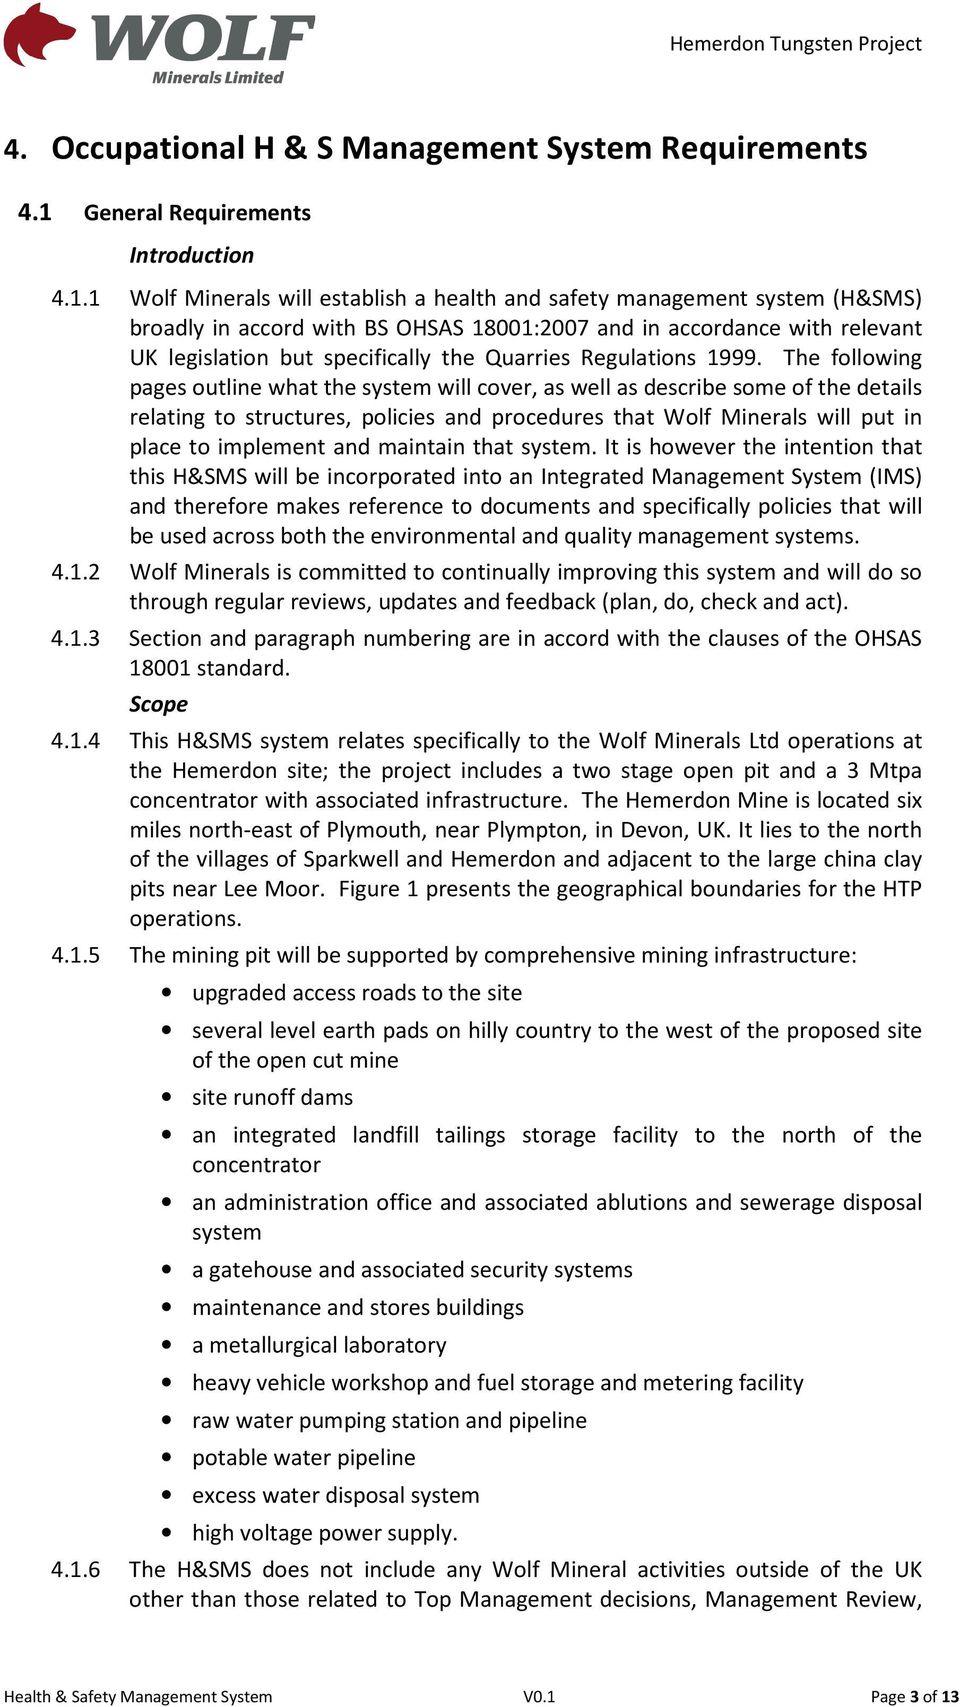 1 Wolf Minerals will establish a health and safety management system (H&SMS) broadly in accord with BS OHSAS 18001:2007 and in accordance with relevant UK legislation but specifically the Quarries